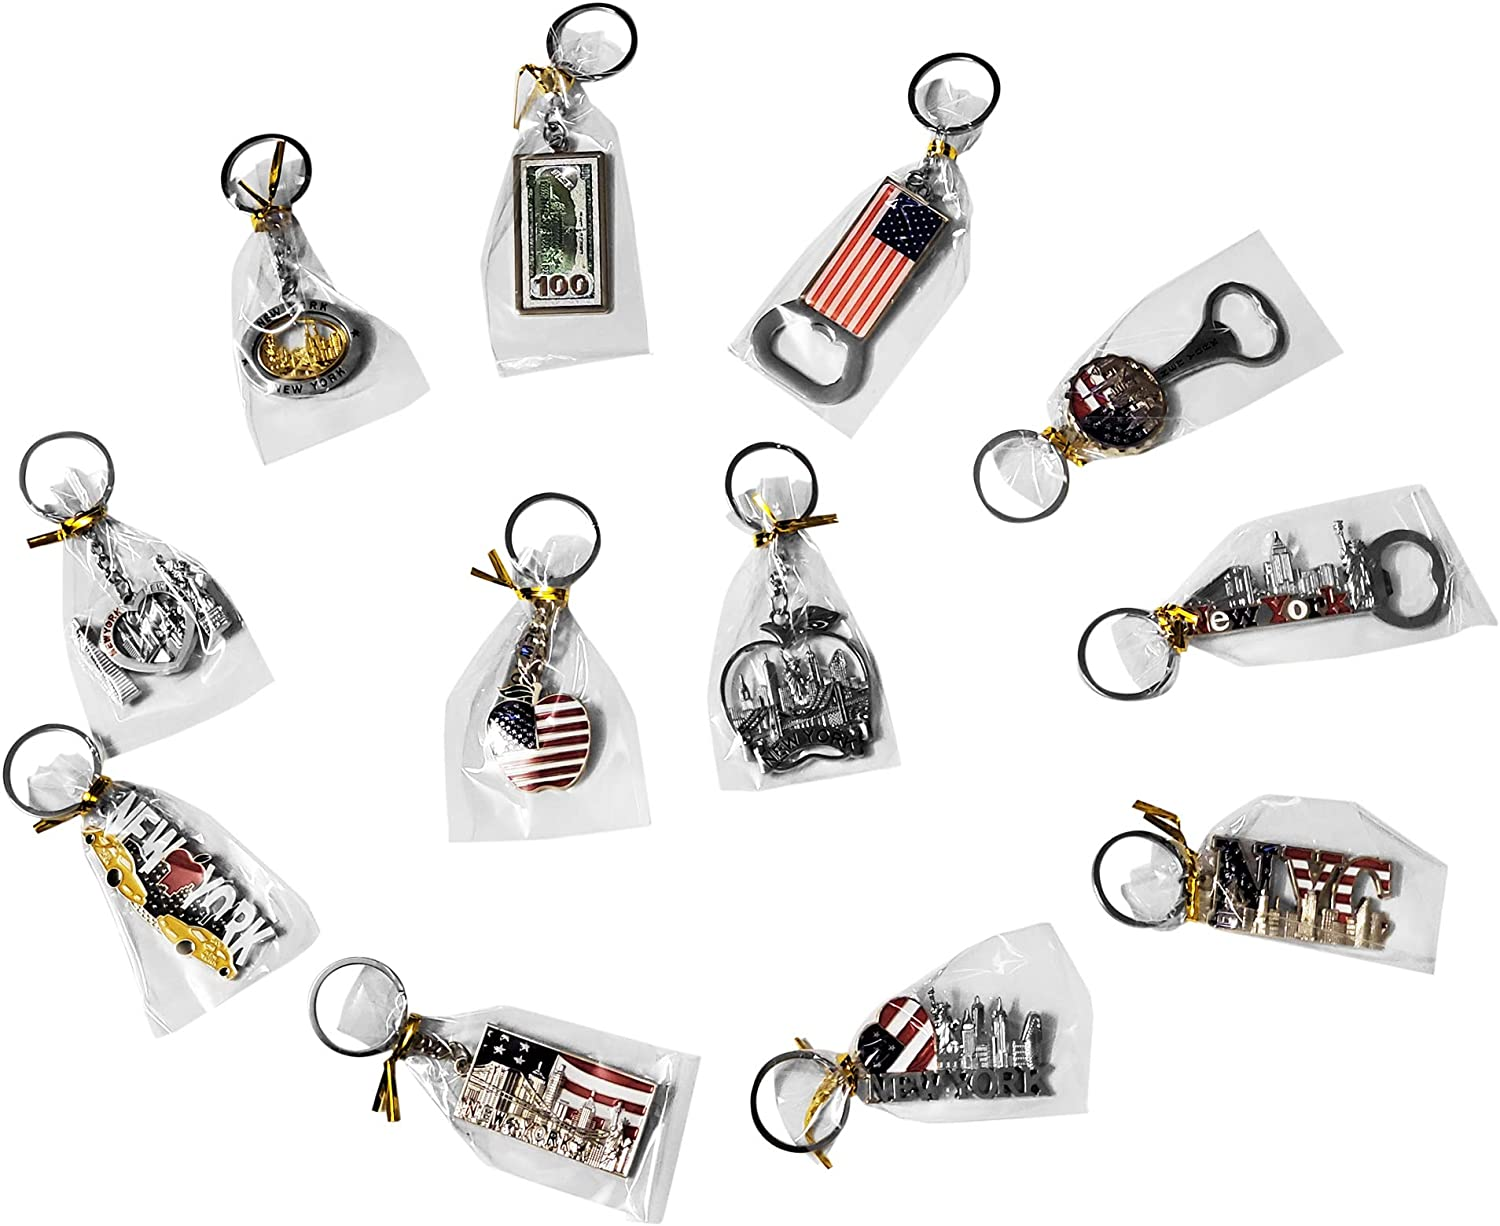 12 Pack NYC Souvenir Collection New York Metal Keychain Ring Bundle Bulk Includes 3pc Bottle Opener, USA Flag,NY Cab, Apple, And More